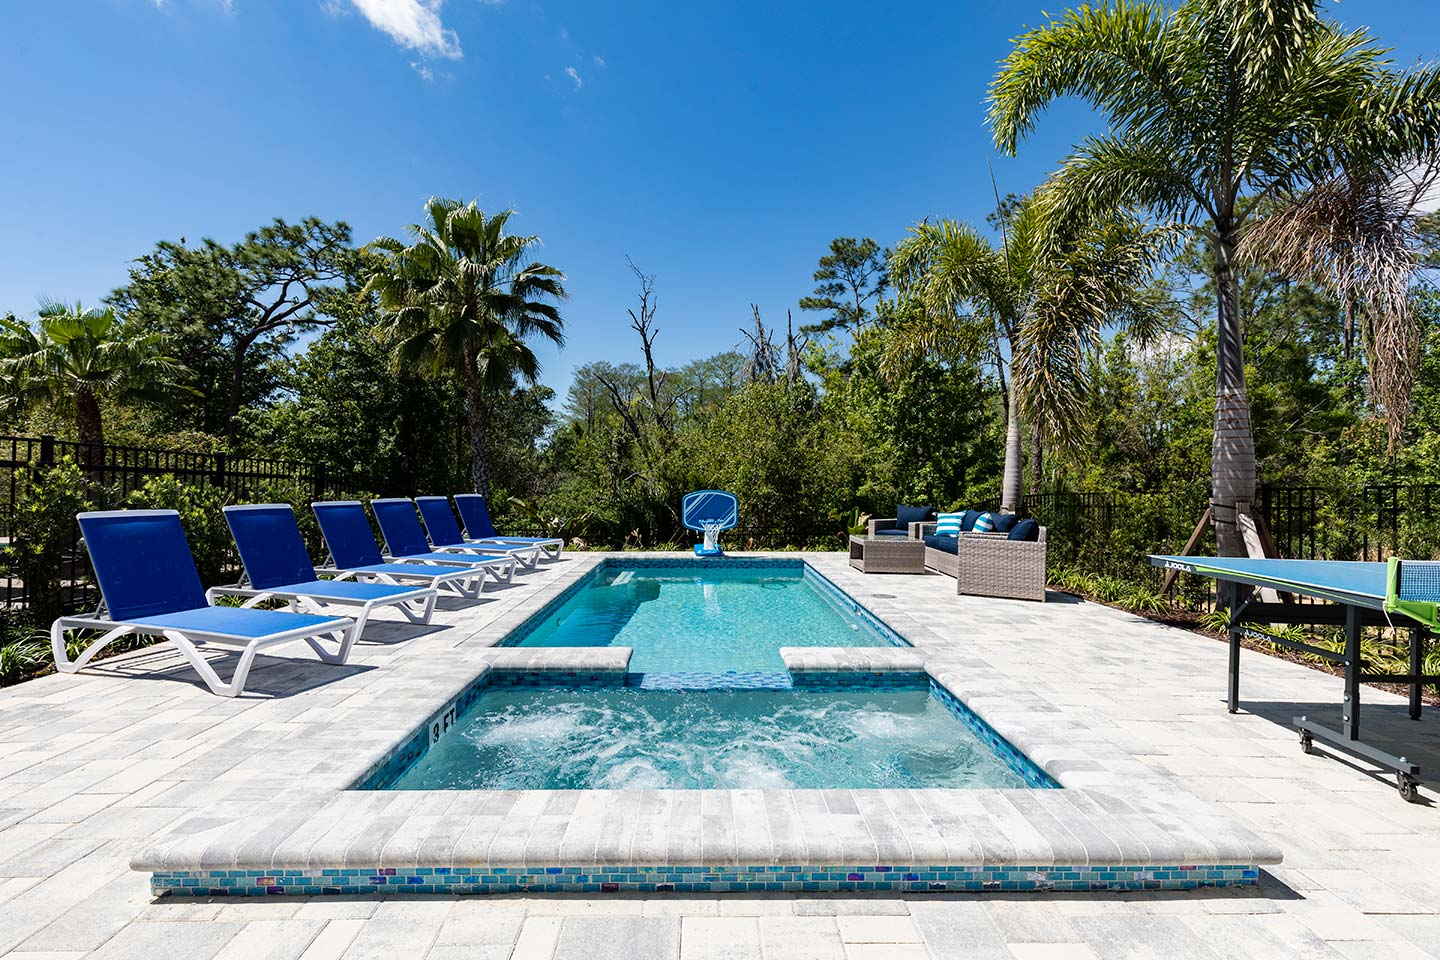 [amenities:private-pool-and-spa:3] Private Pool and Spa